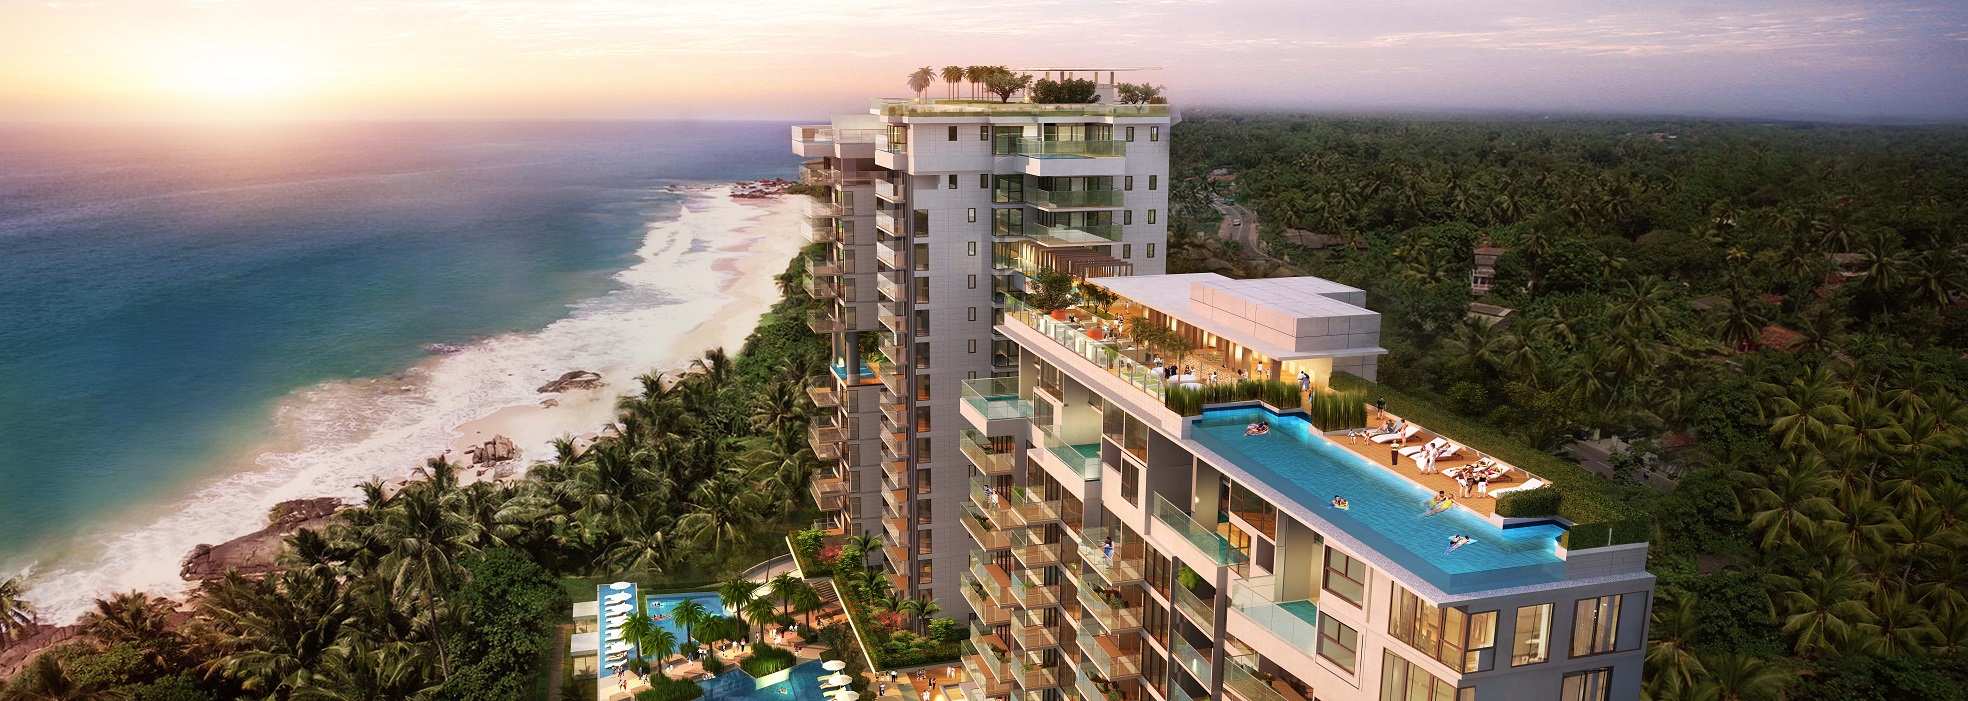 Beachfront Apartments | Balapitiya